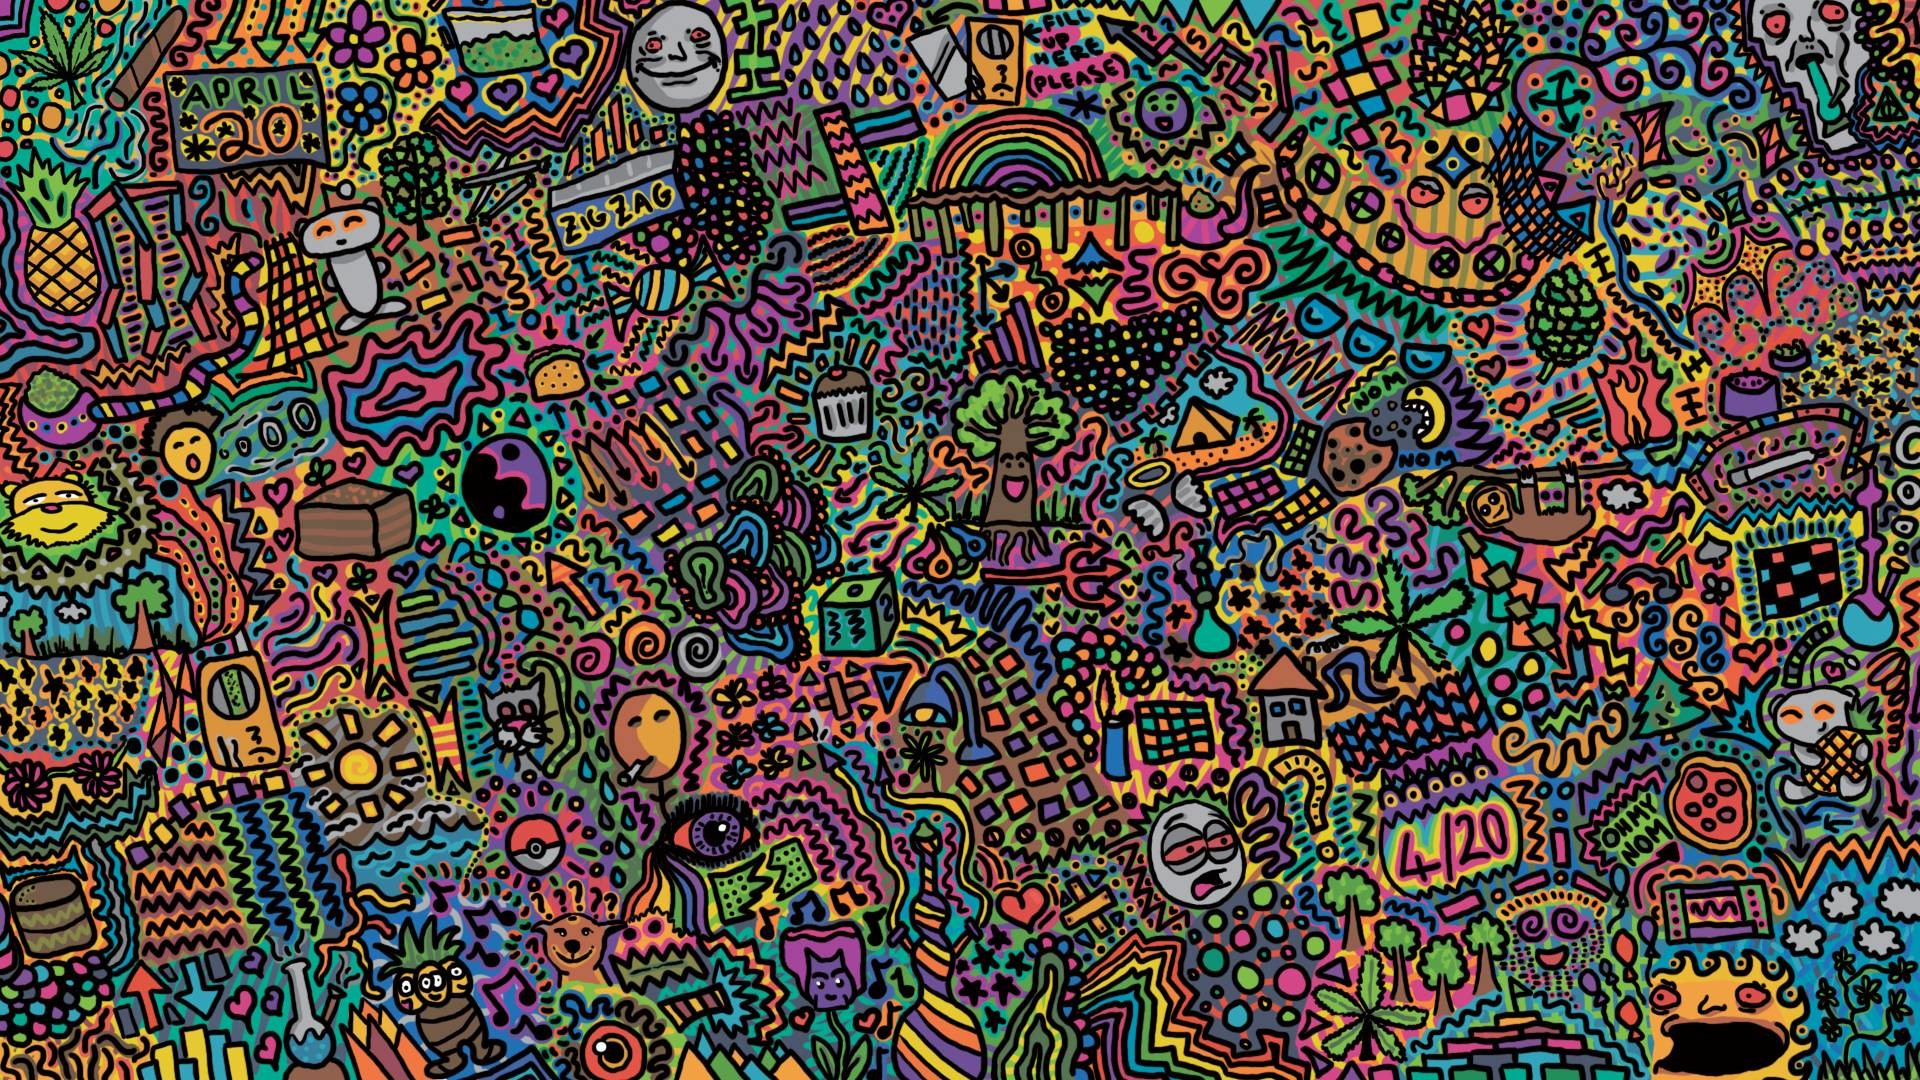 Psychedelic Desktop Wallpaper Hd 68 Images